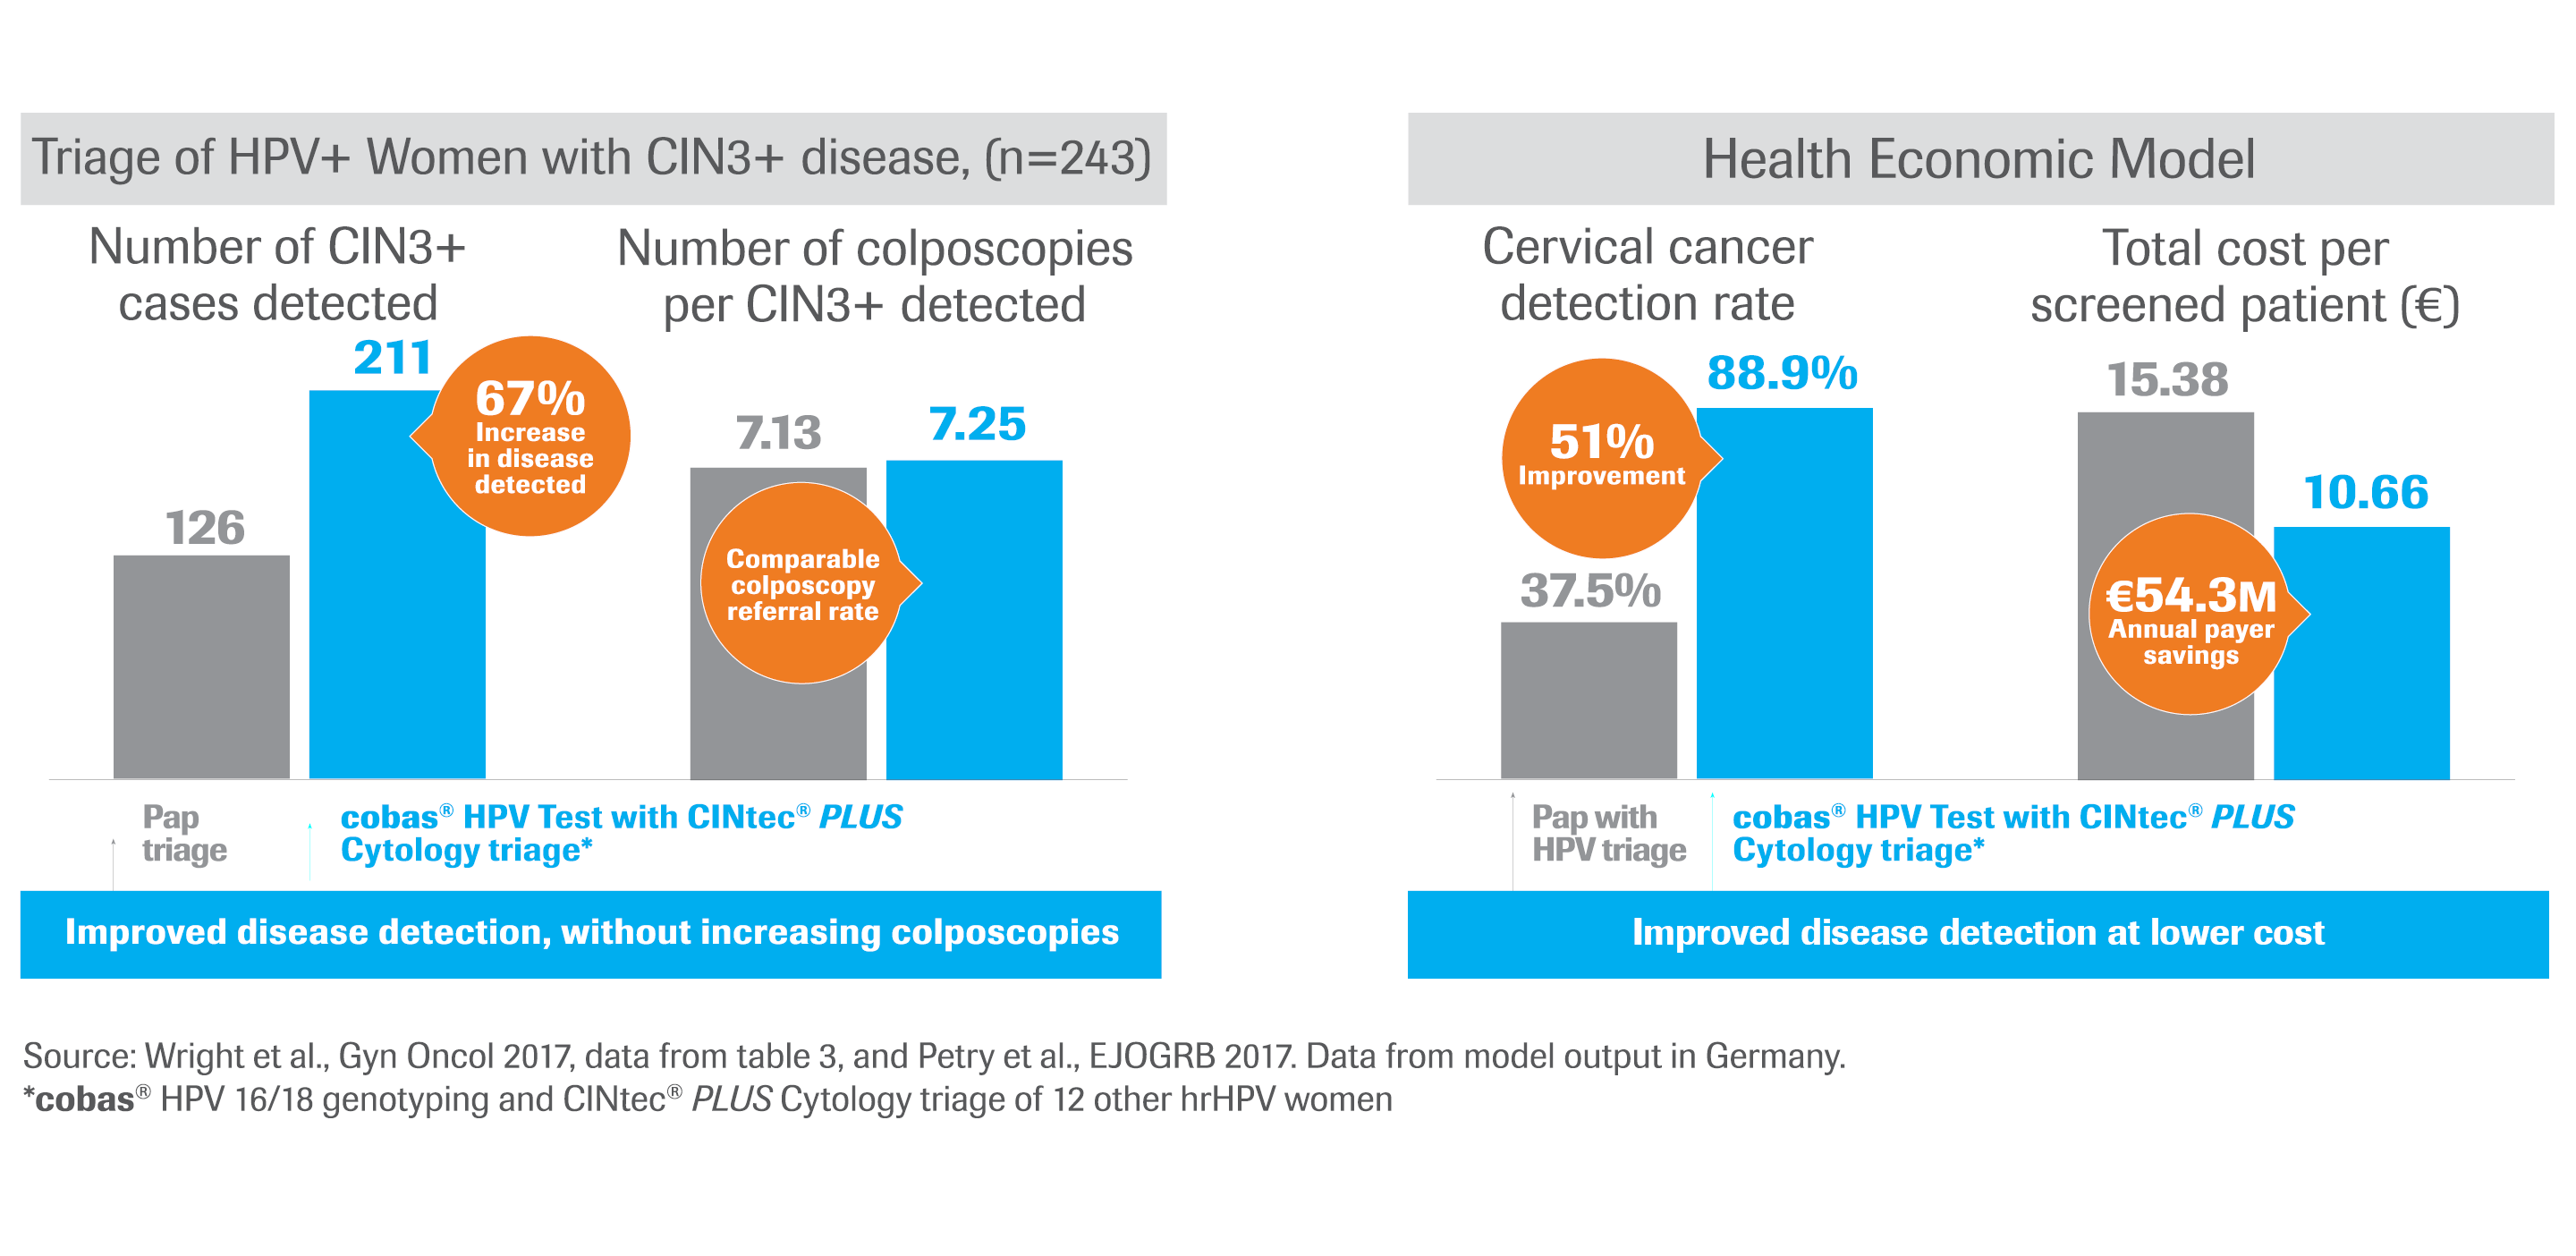 Data analysis of CINtec PLUS Cytology triage results for women positive with cobas HPV 16 or HPV 18 or 12 other hrHPV genotypes